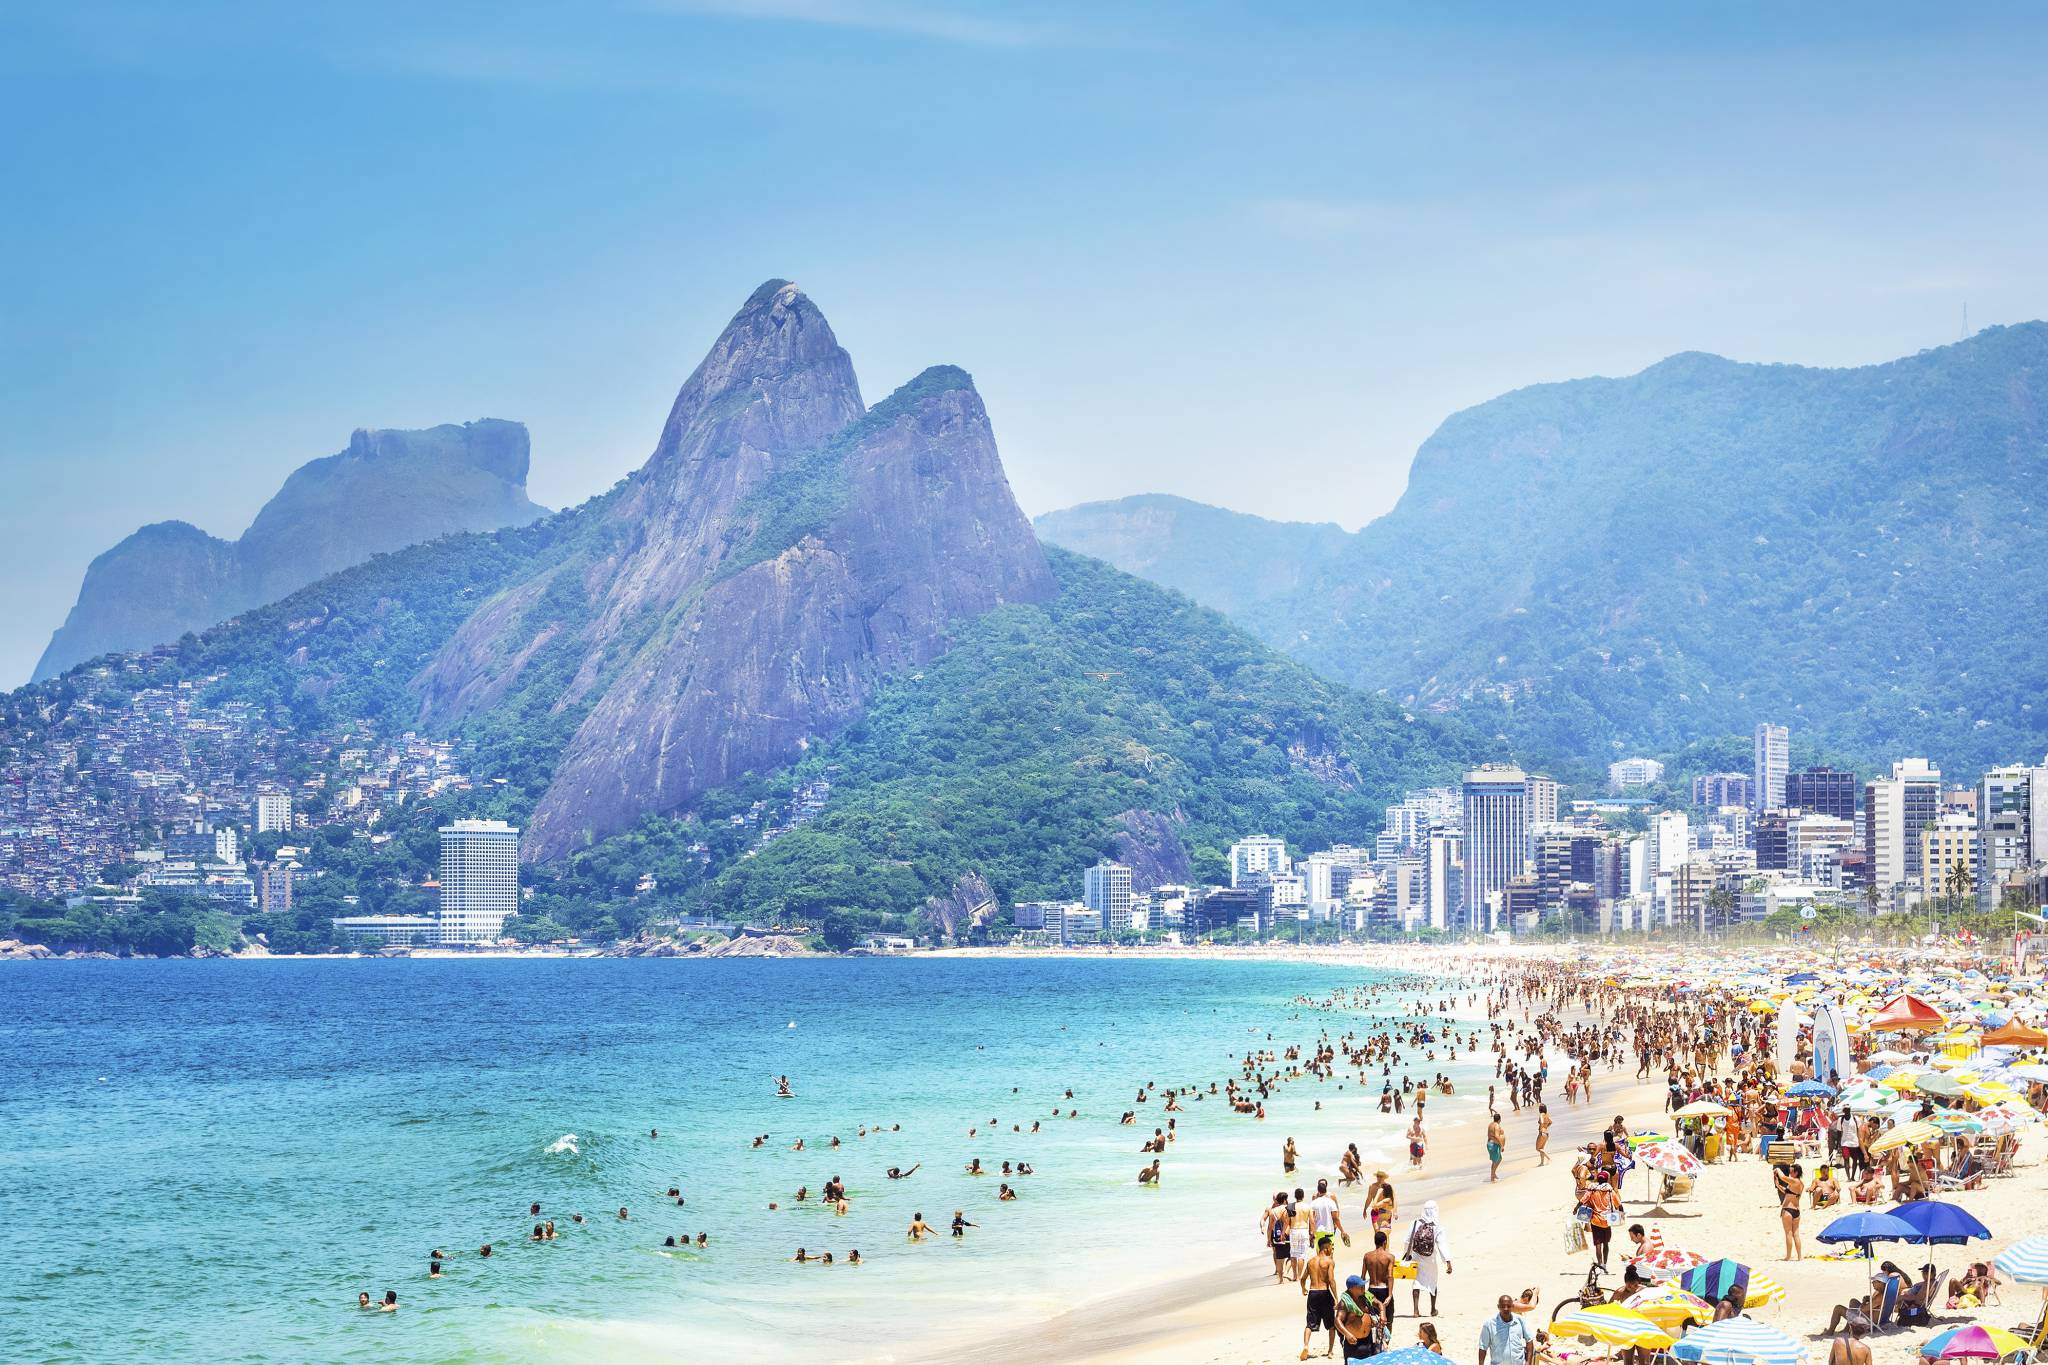 Visit Rio de Janeiro with eTips Guide with Augmented Reality